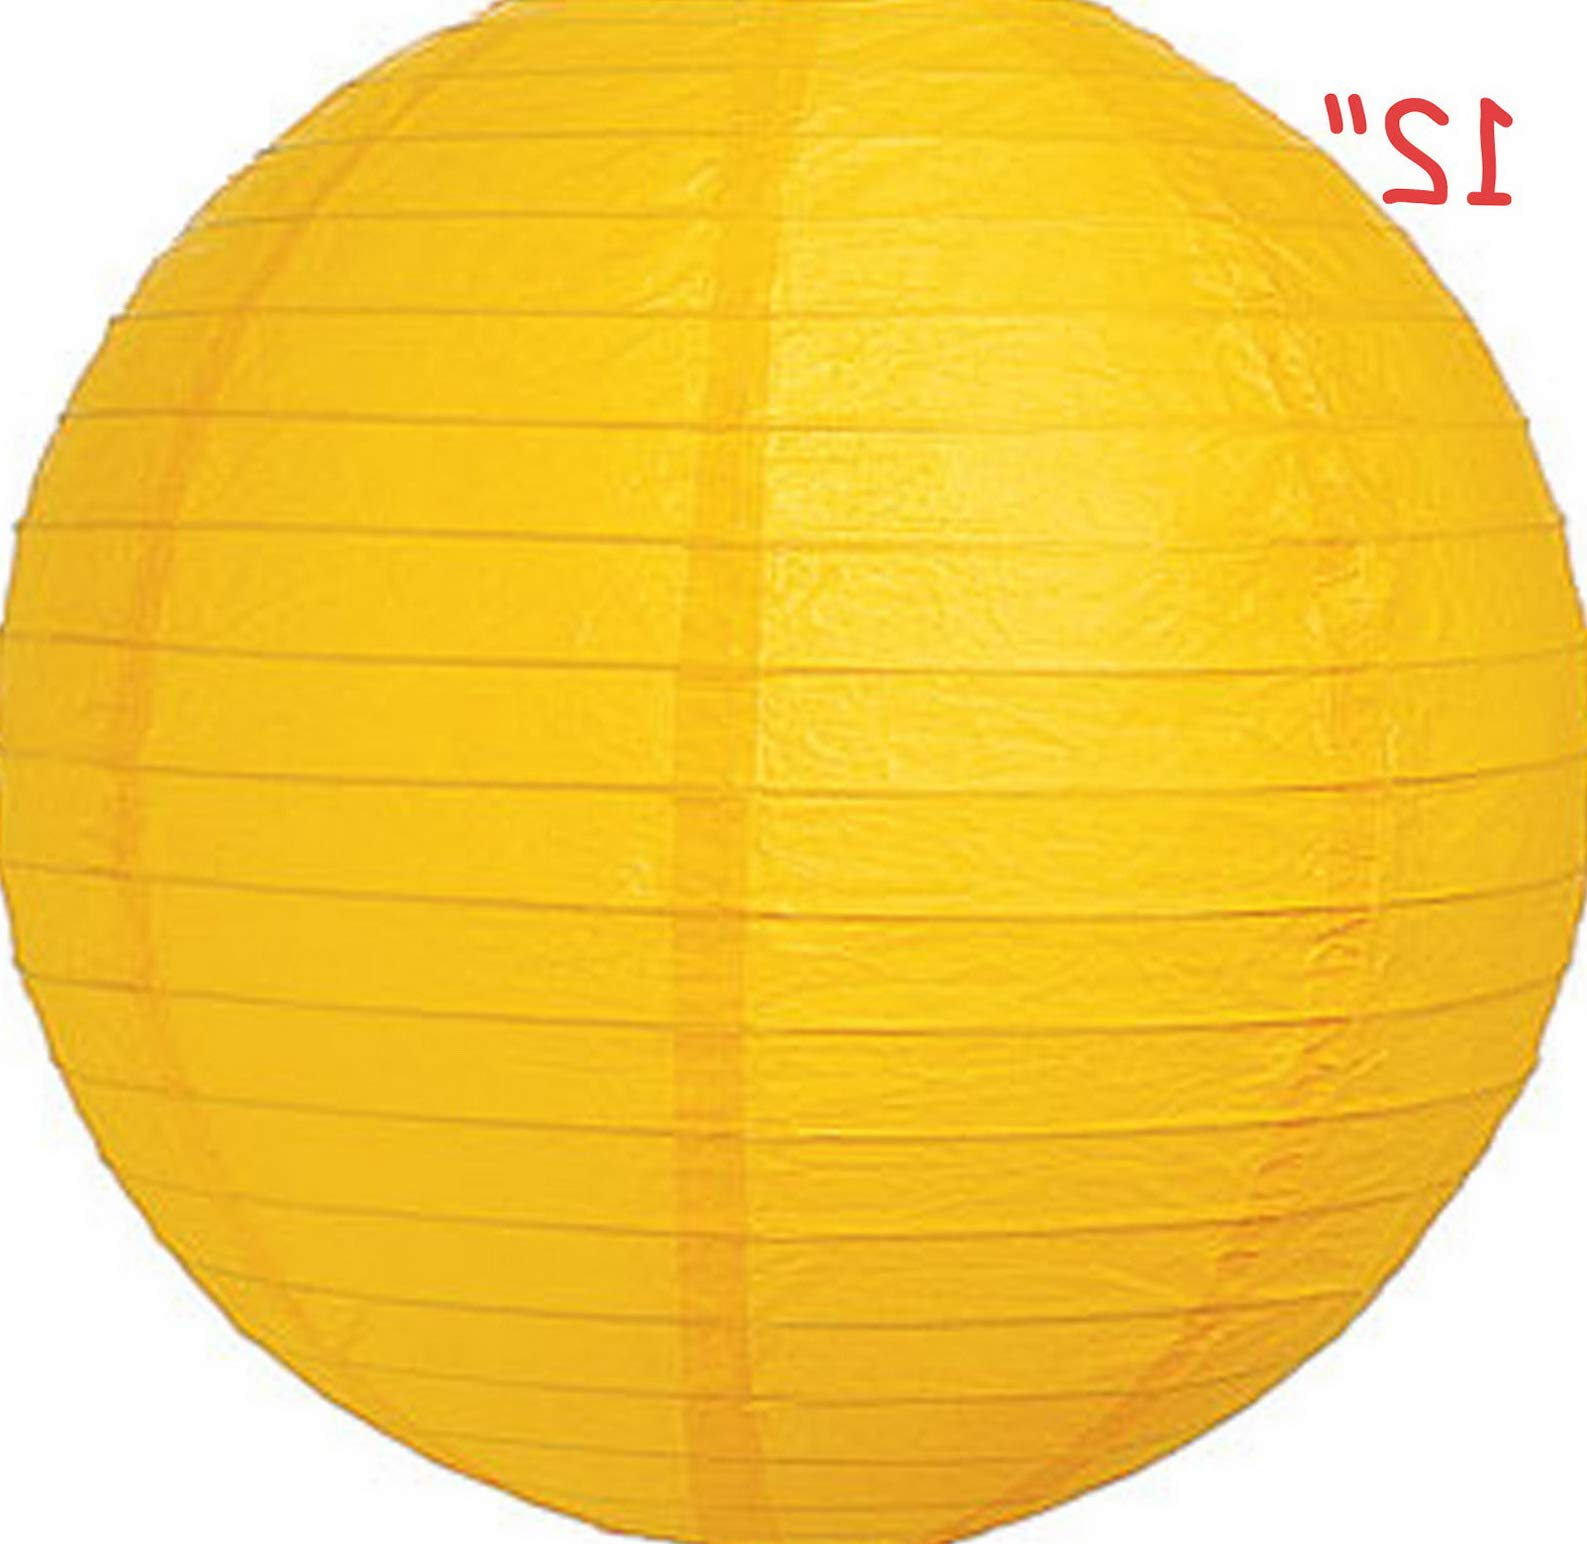 Mikash 12X Round Chinese Paper Lanterns lamp 12 Wedding Party Floral Event Decoration | Model WDDNGDCRTN - 25486 | with Light